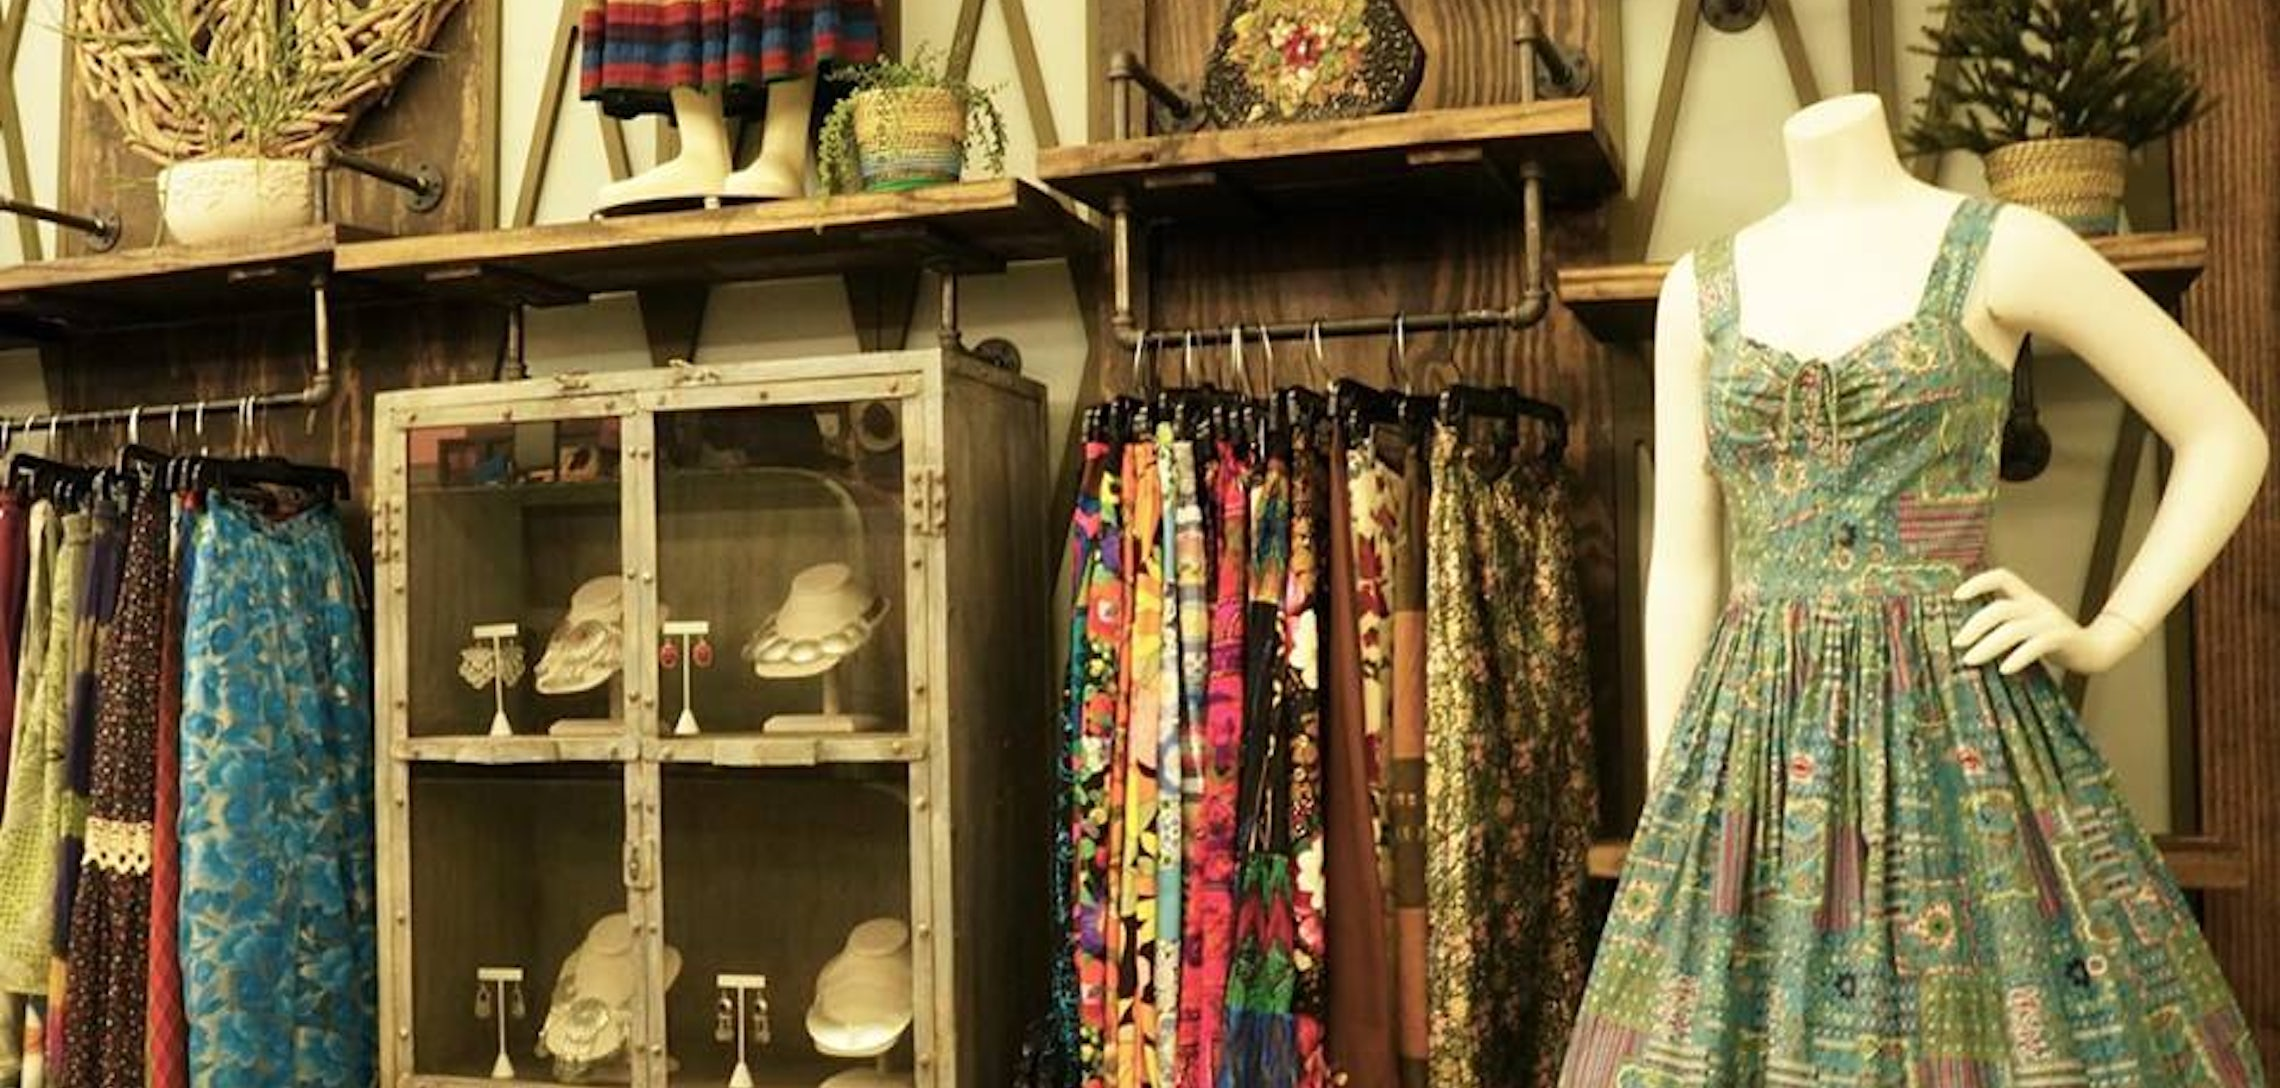 10 Questions with Time Warp Boutique owner Joshua Holder